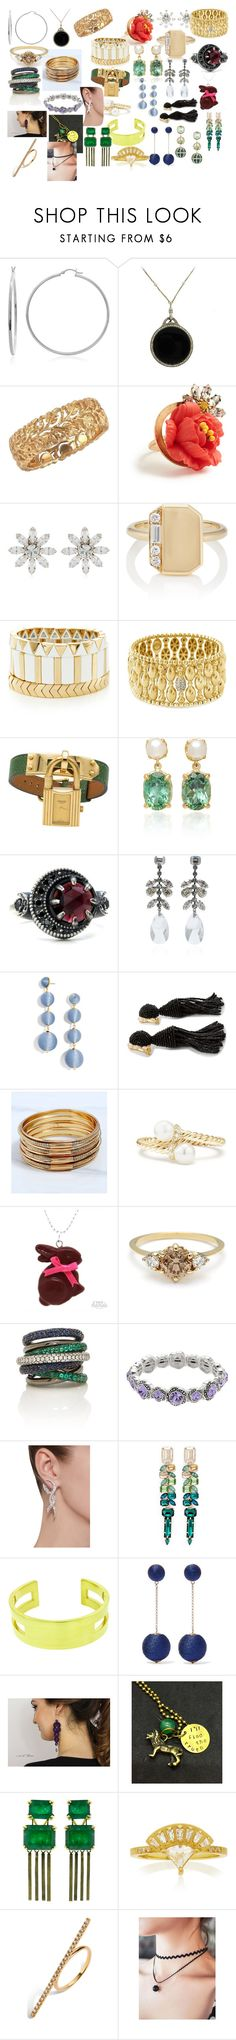 """jewelry #20"" by lukehemmings150 ❤ liked on Polyvore featuring Sterling Essentials, Elizabeth Cole, CA&LOU, My Story, Hulchi Belluni, Hermès, BaubleBar, Oscar de la Renta, David Yurman and Napier"